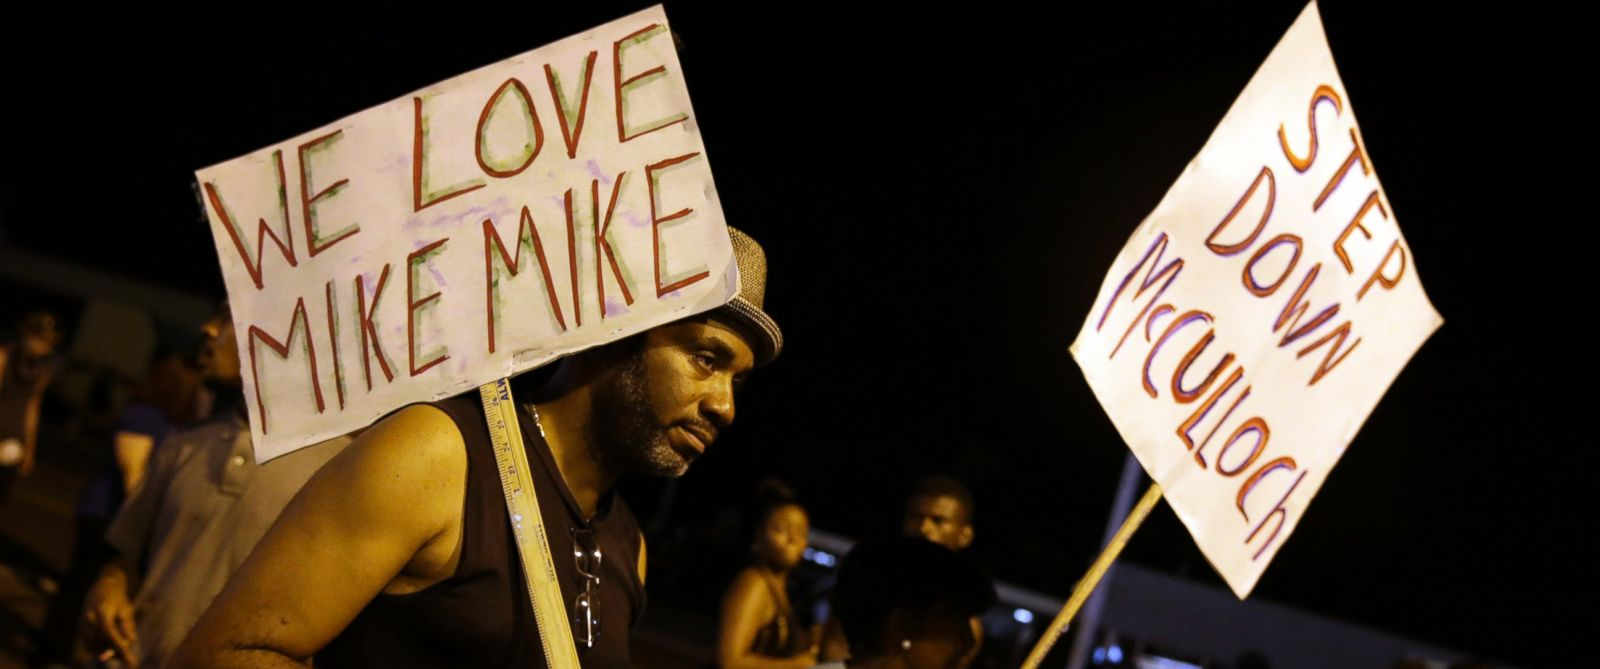 PHOTO: Protesters march, Aug. 21, 2014, in Ferguson, Mo., walking in laps near the spot where Michael Brown was shot.